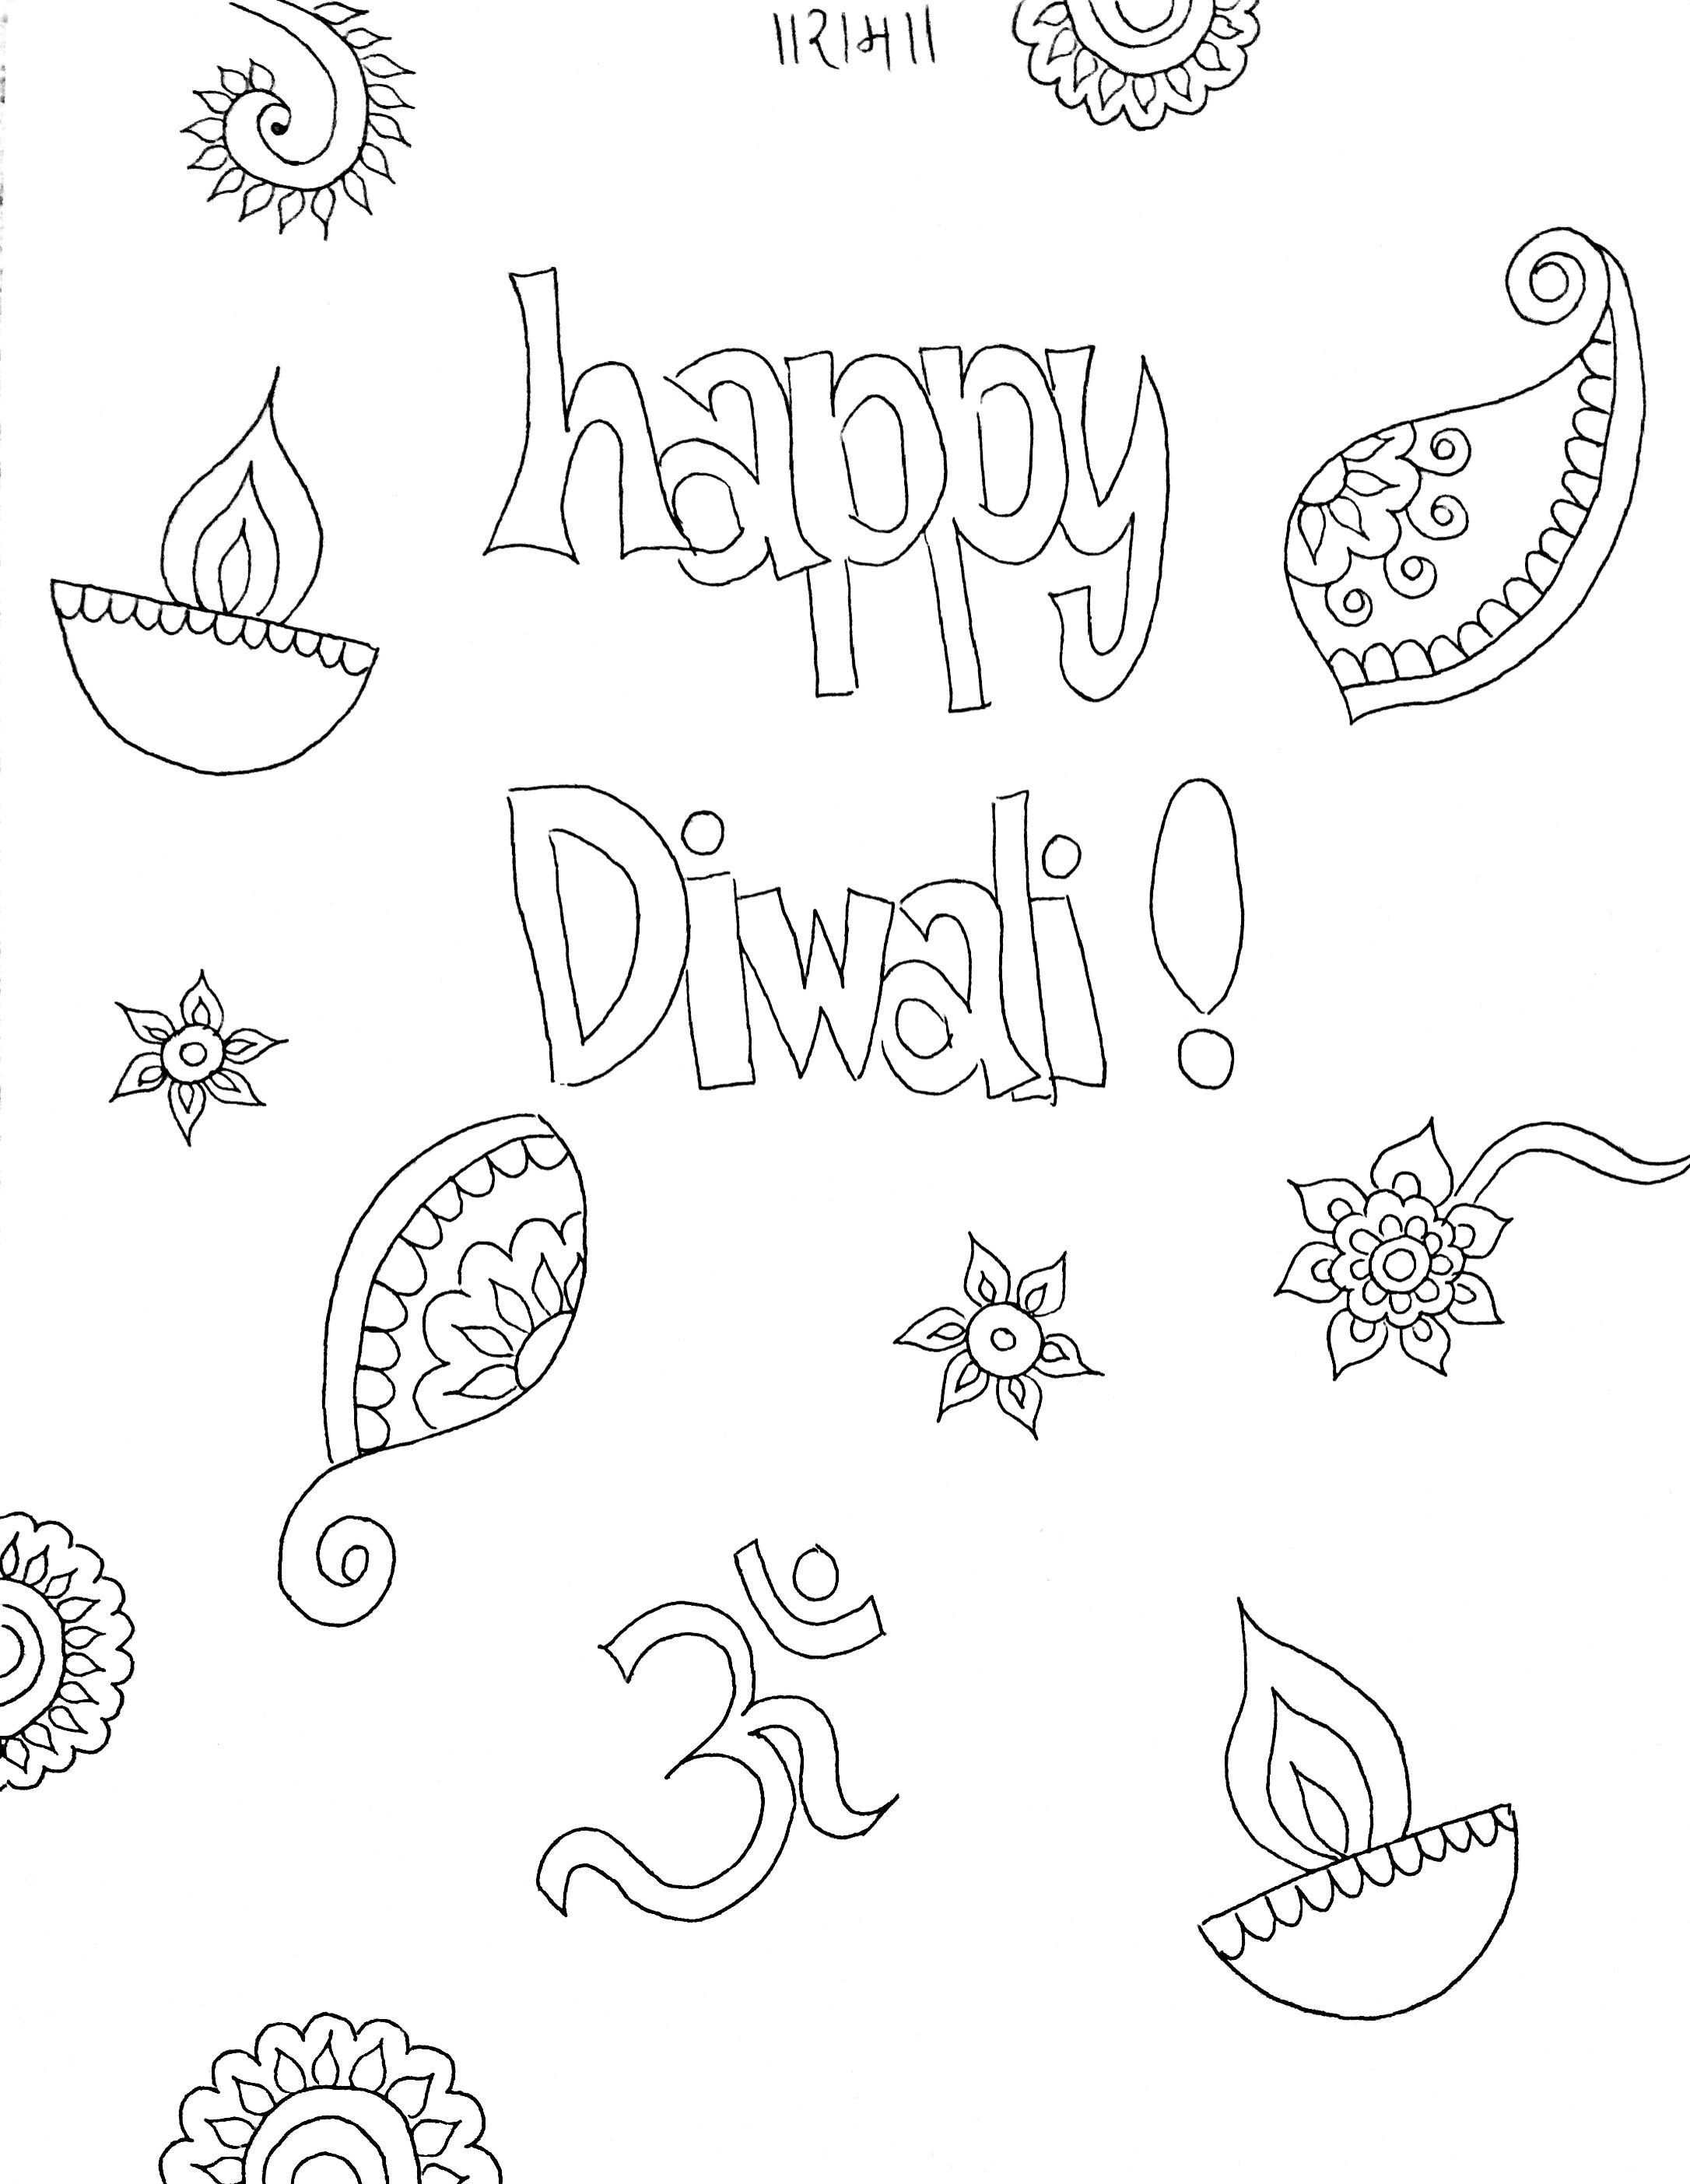 diwali outline pictures diwali coloring pages pitara kids network outline diwali pictures